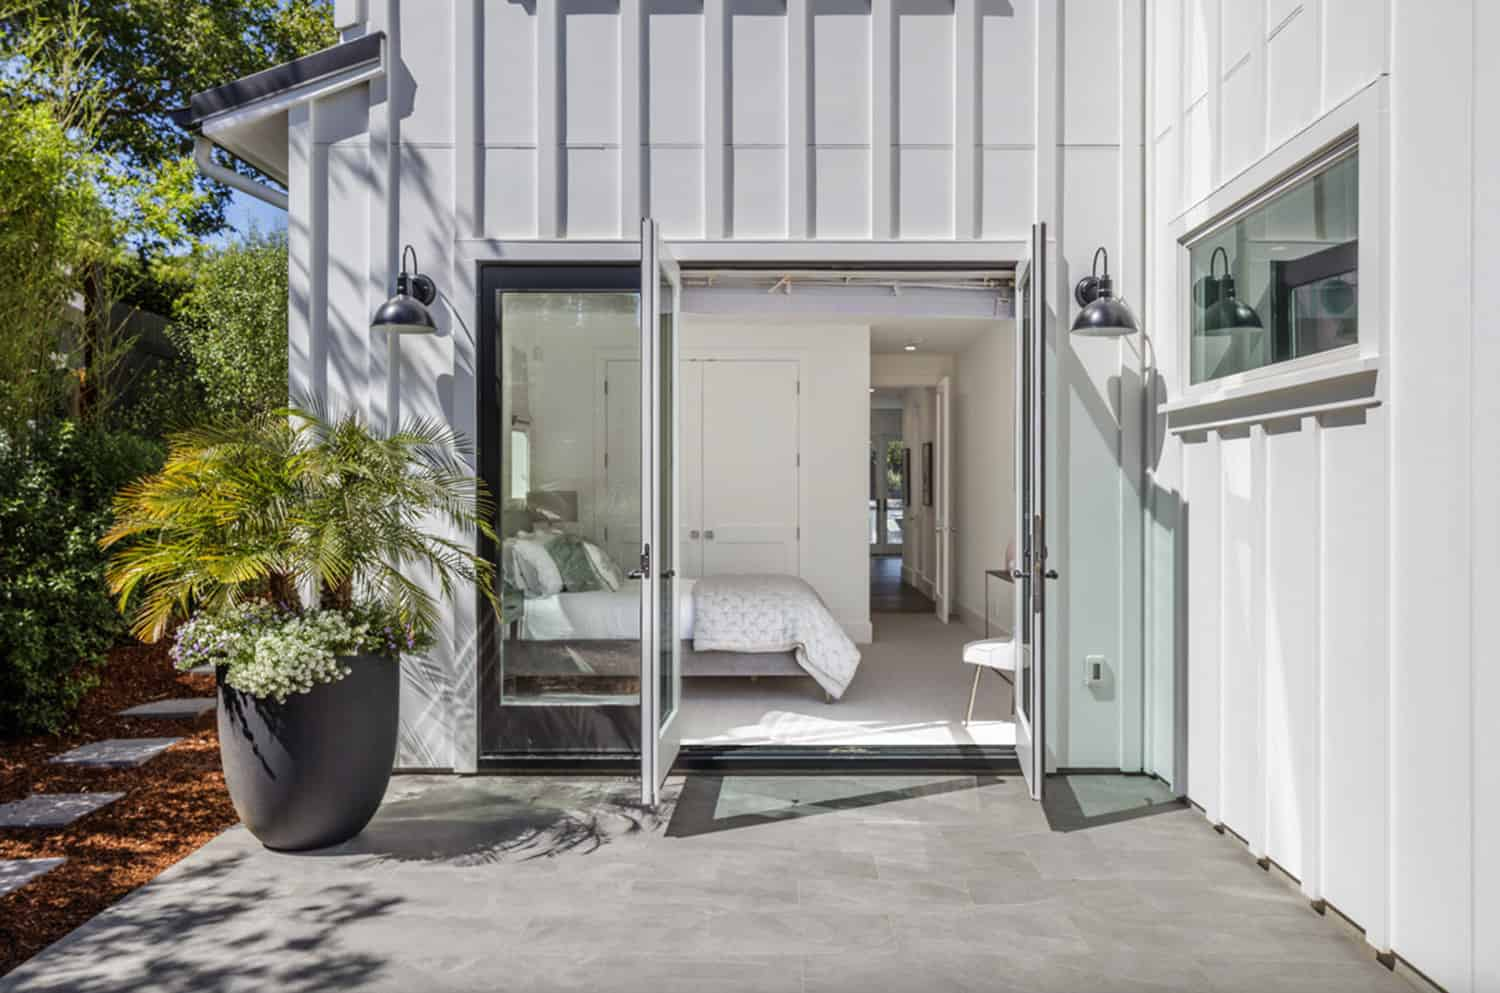 traditional-home-bedroom-viewed-from-exterior-through-glass-french-doors